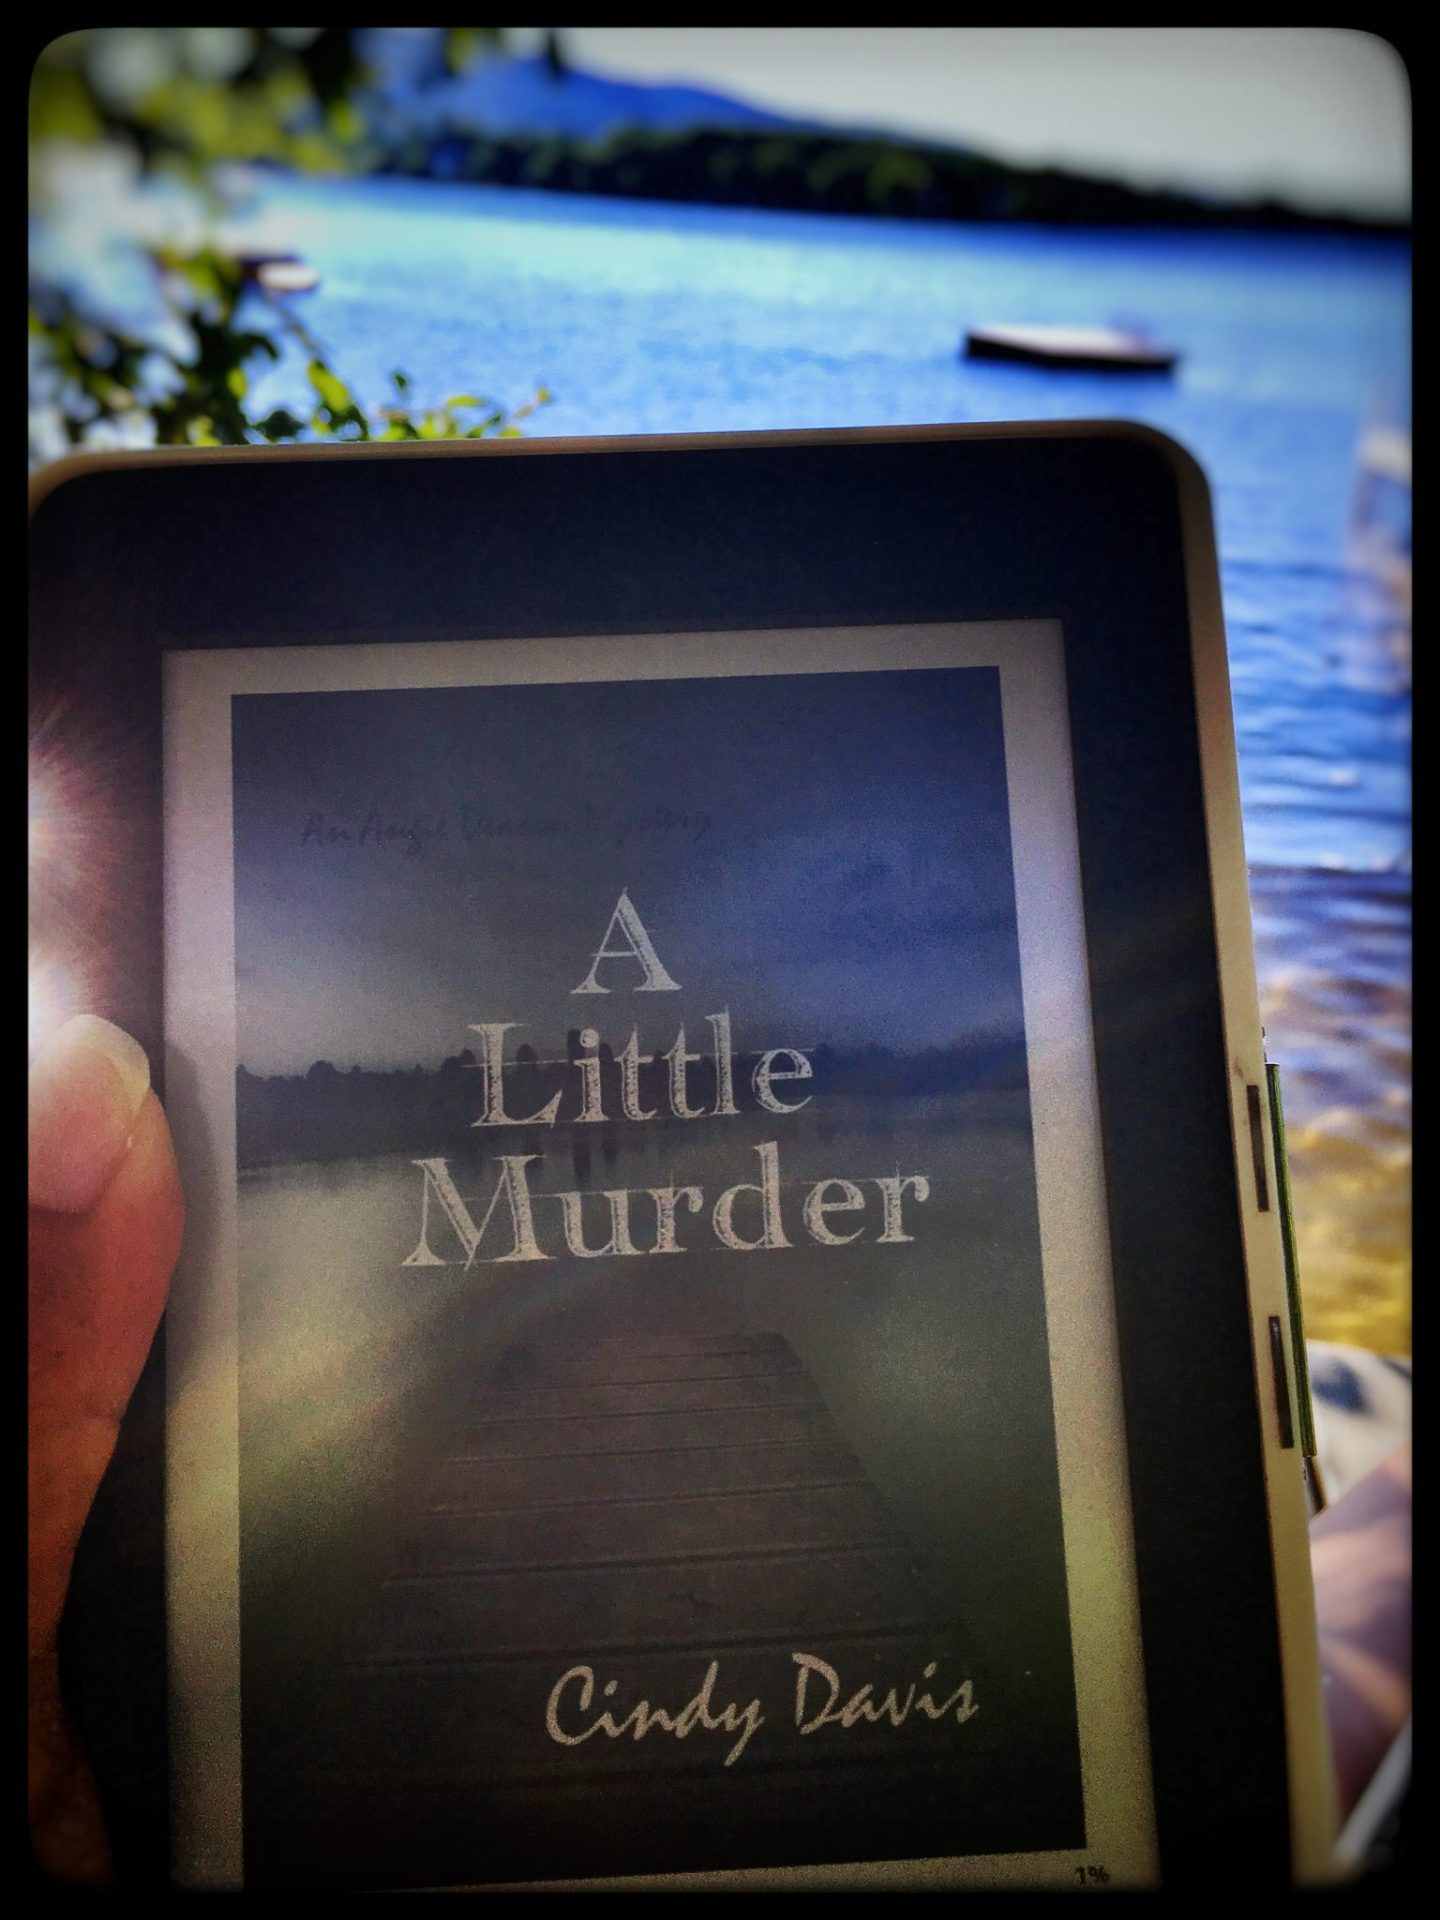 A Little Murder by Cindy Davis